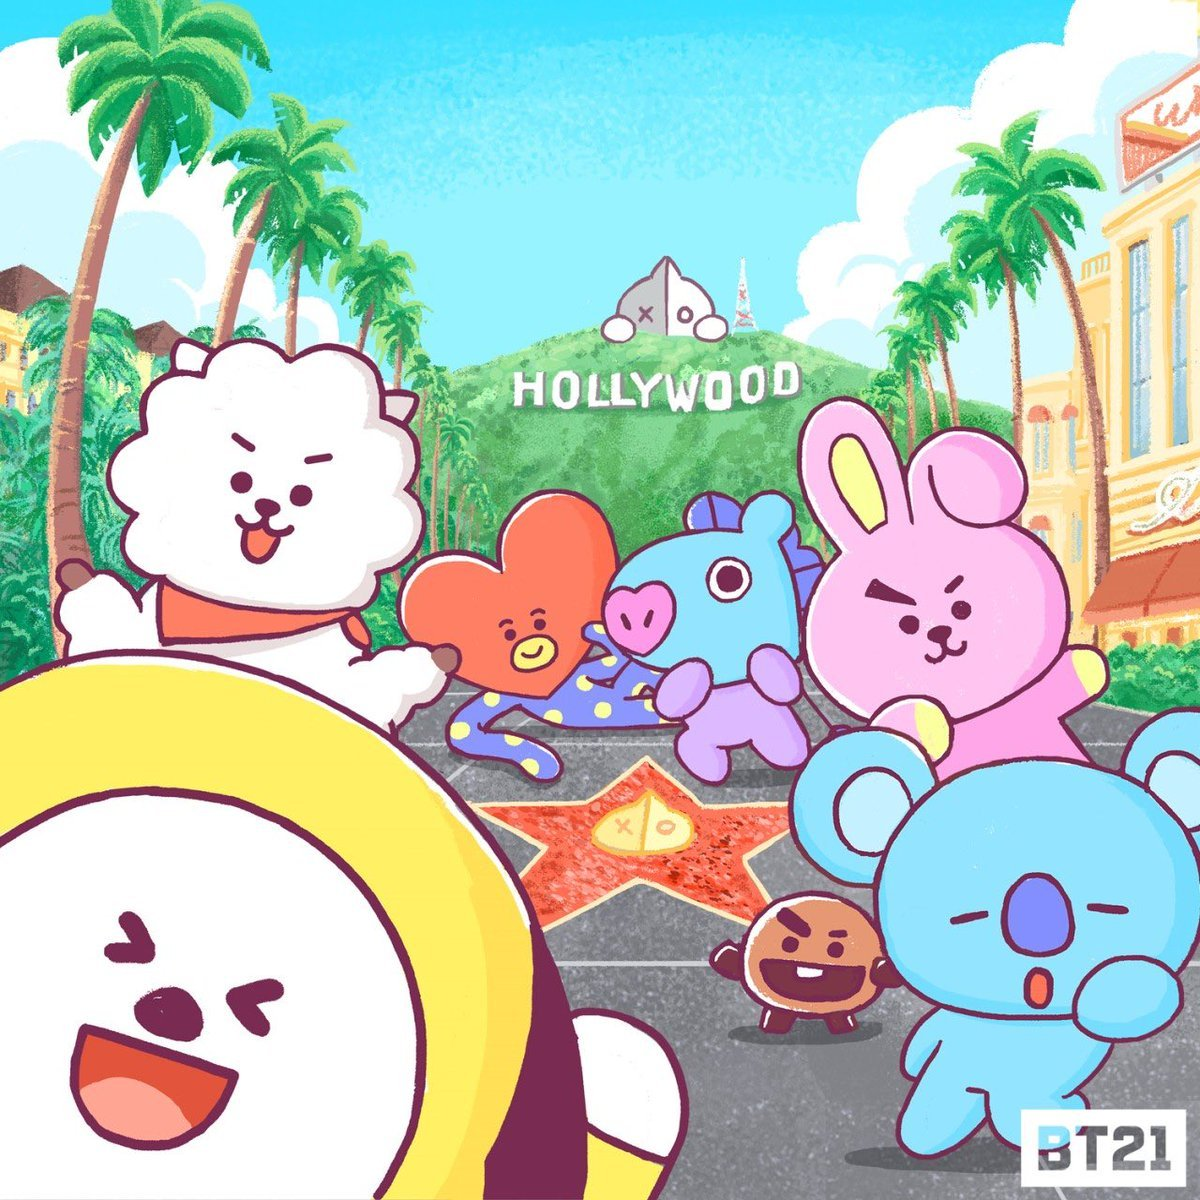 e9497188 BT21 Pop-up Store in Hollywood Location: 6922 … – BTS